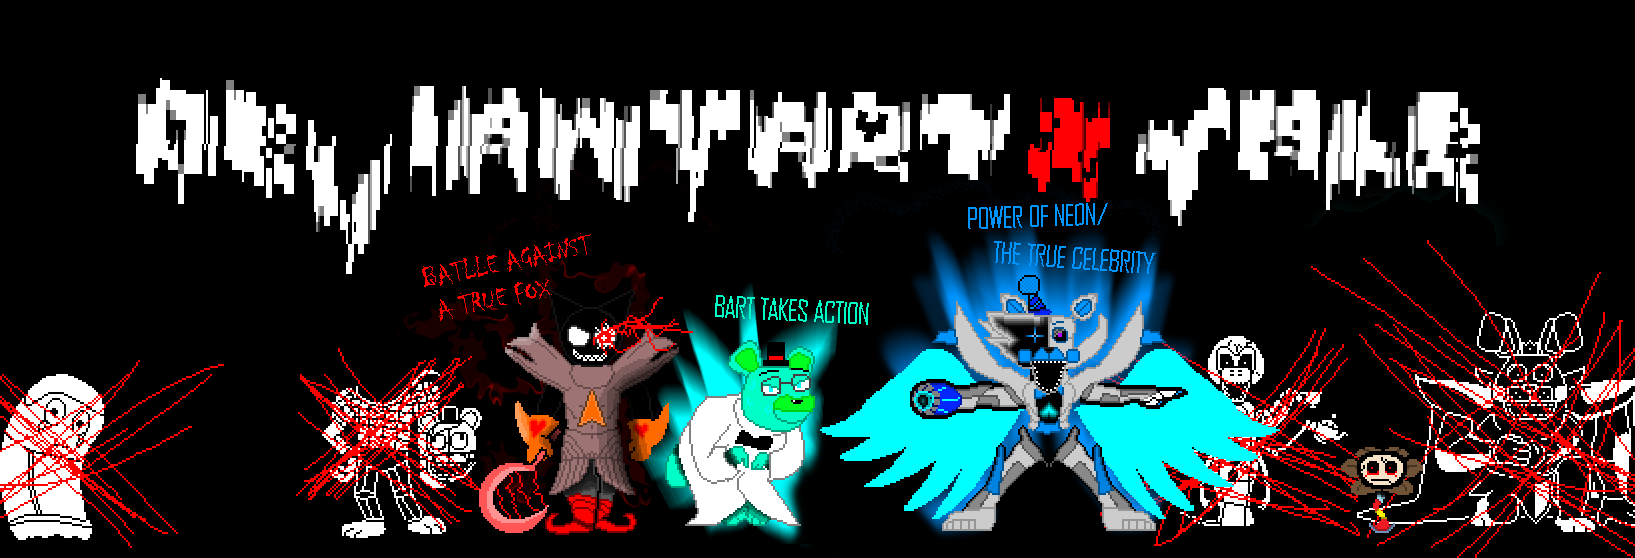 W.i.p.genocide by shadowNightmare13